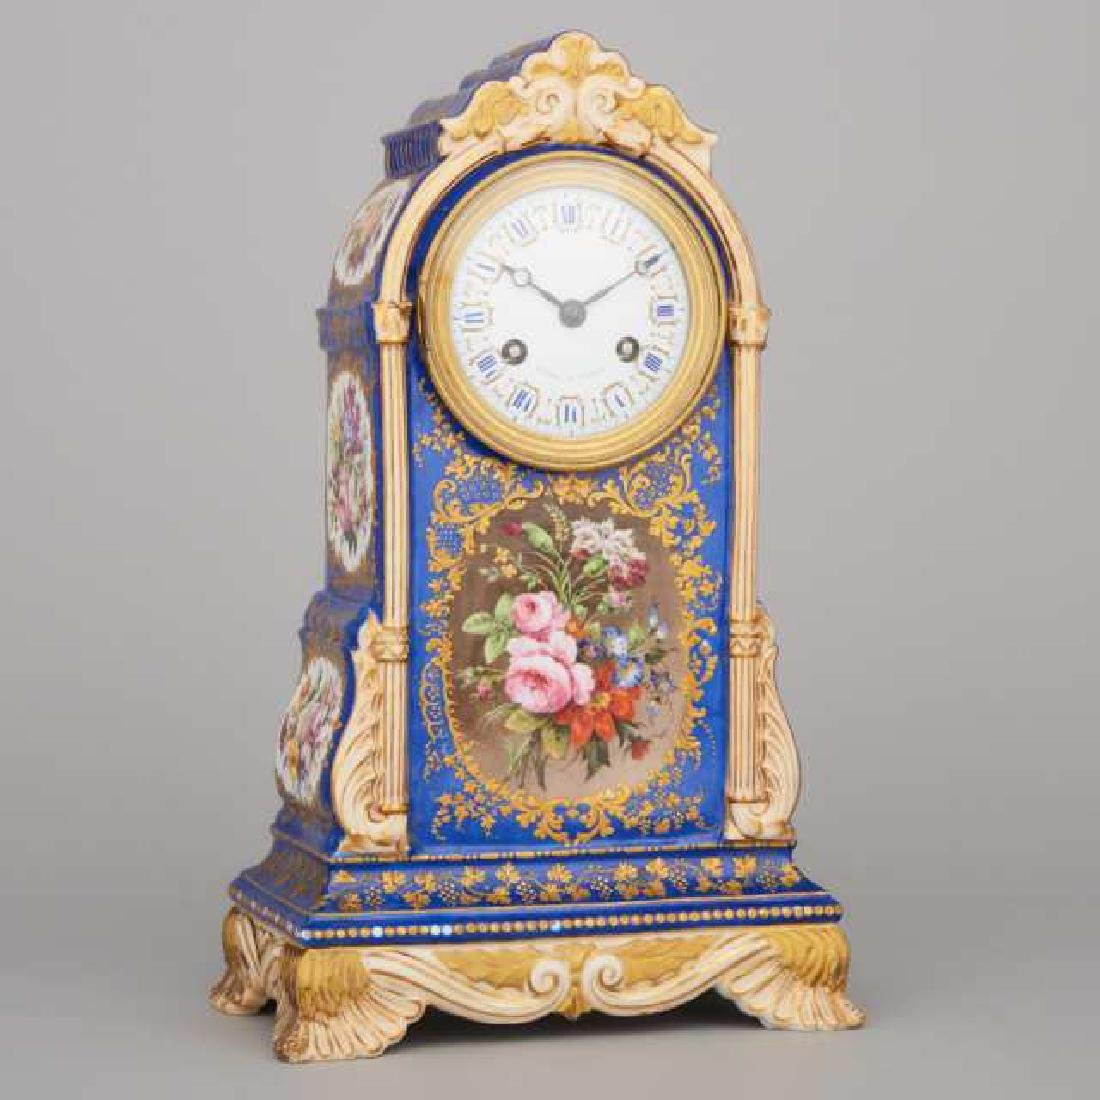 French Porcelain Cased Mantel Clock, 19th century